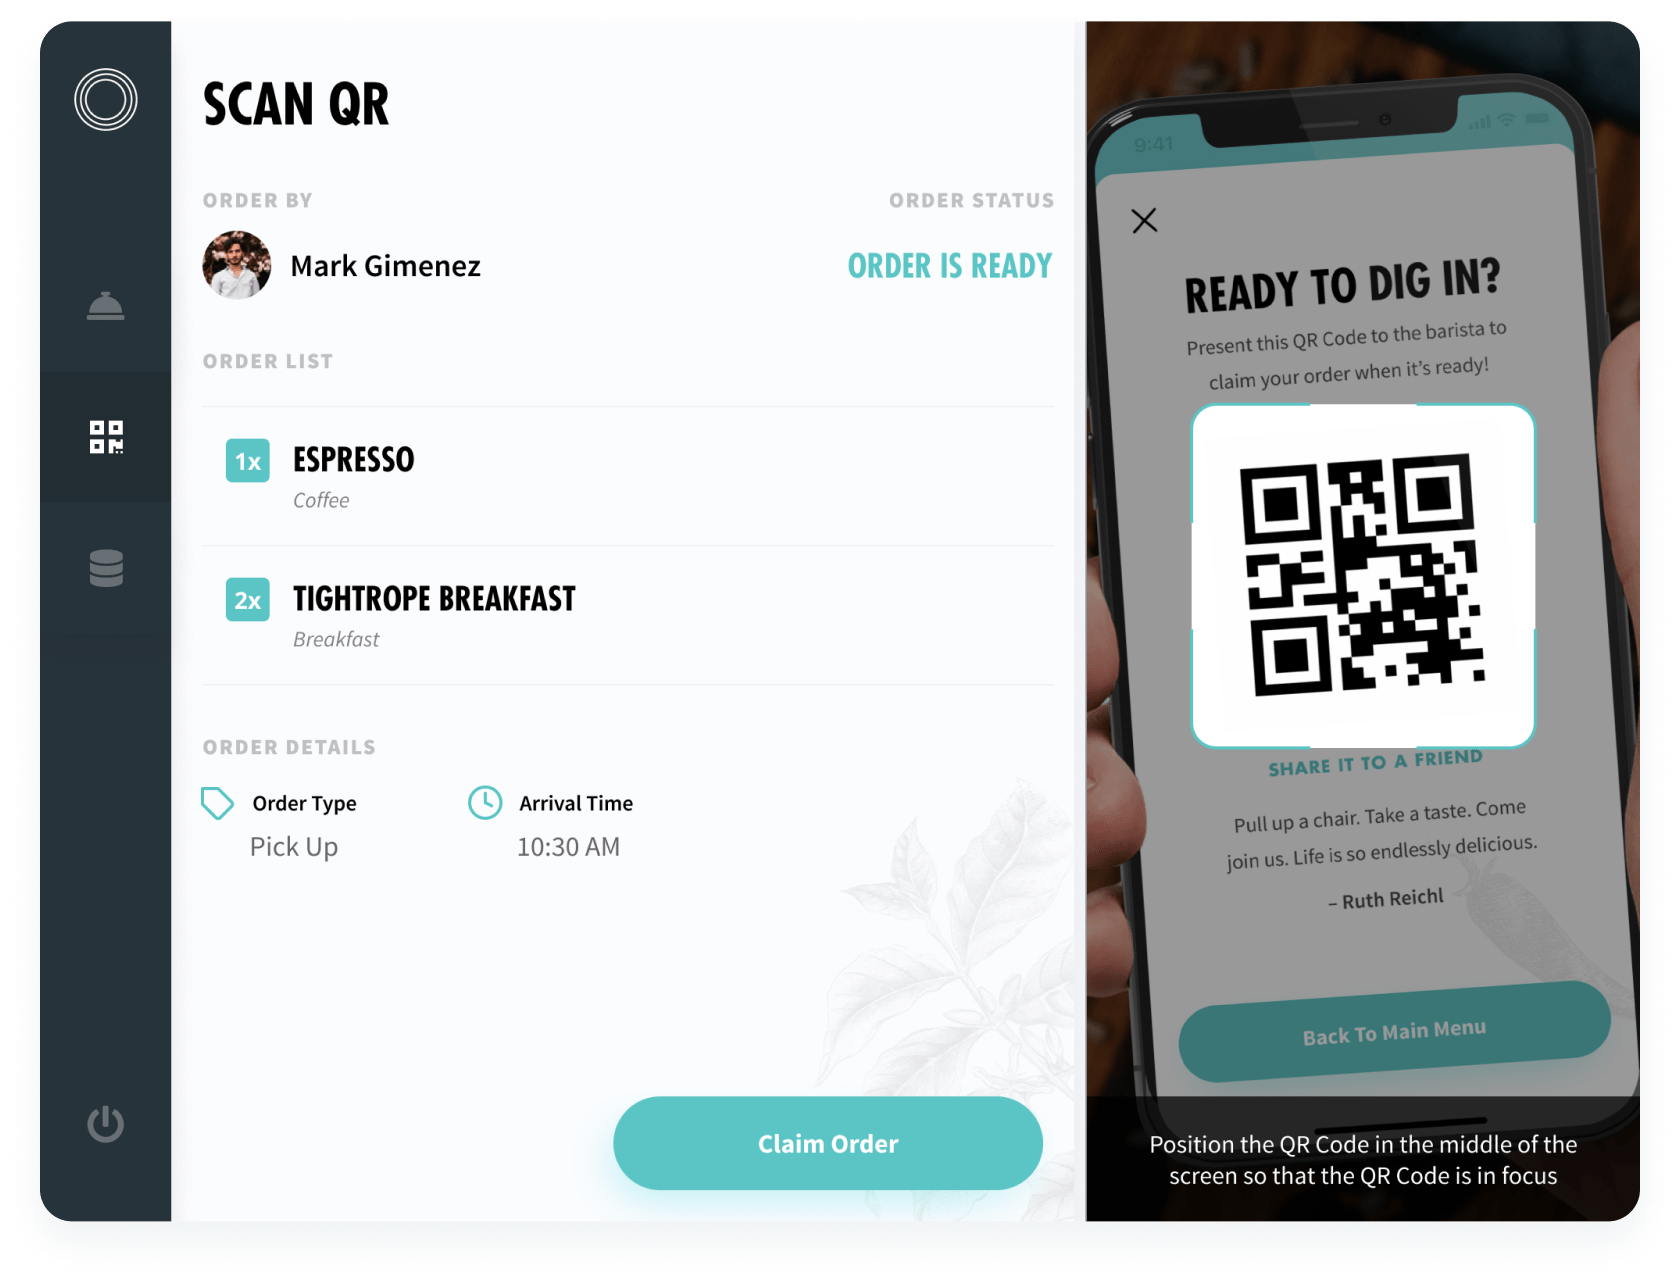 Scan QR Screen